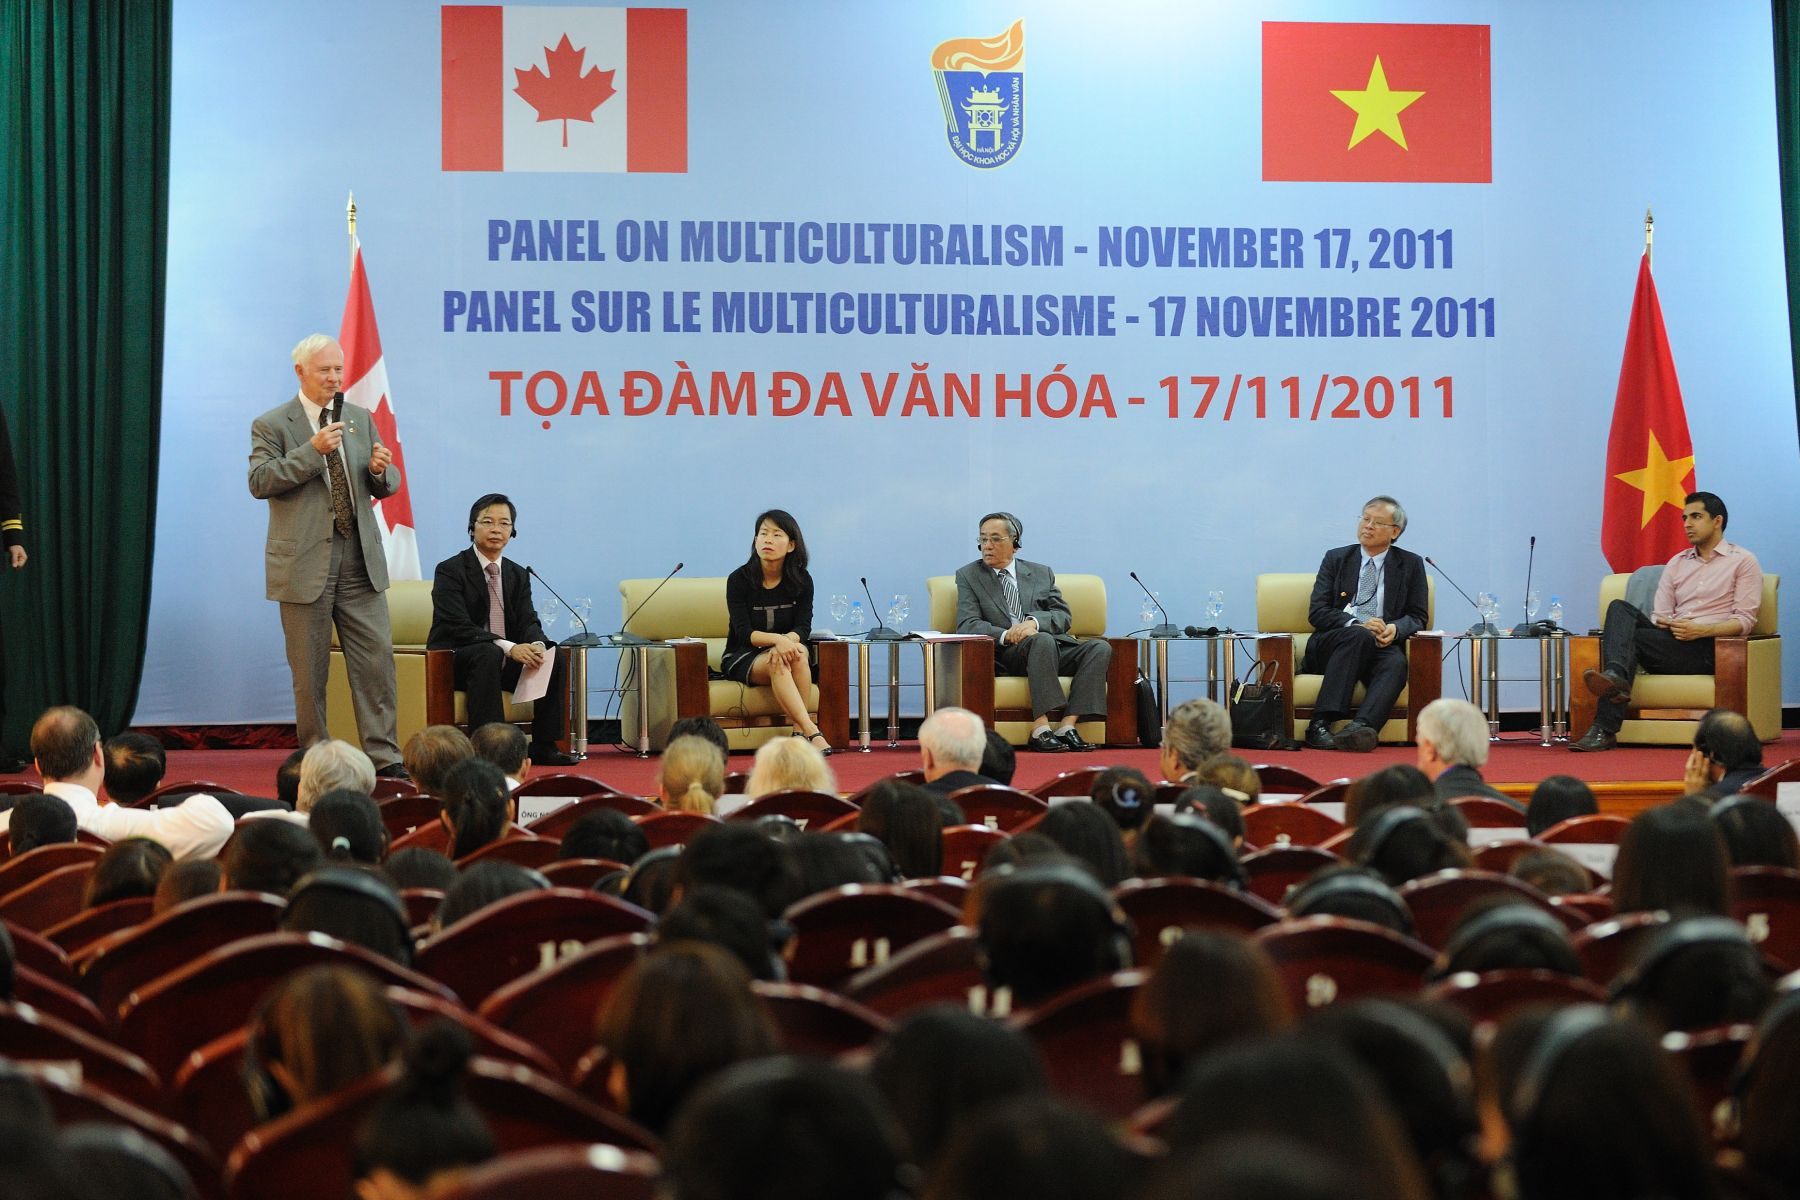 The Governor General and Canadian delegates participated in a discussion on Canada's cultural diversity and human values.